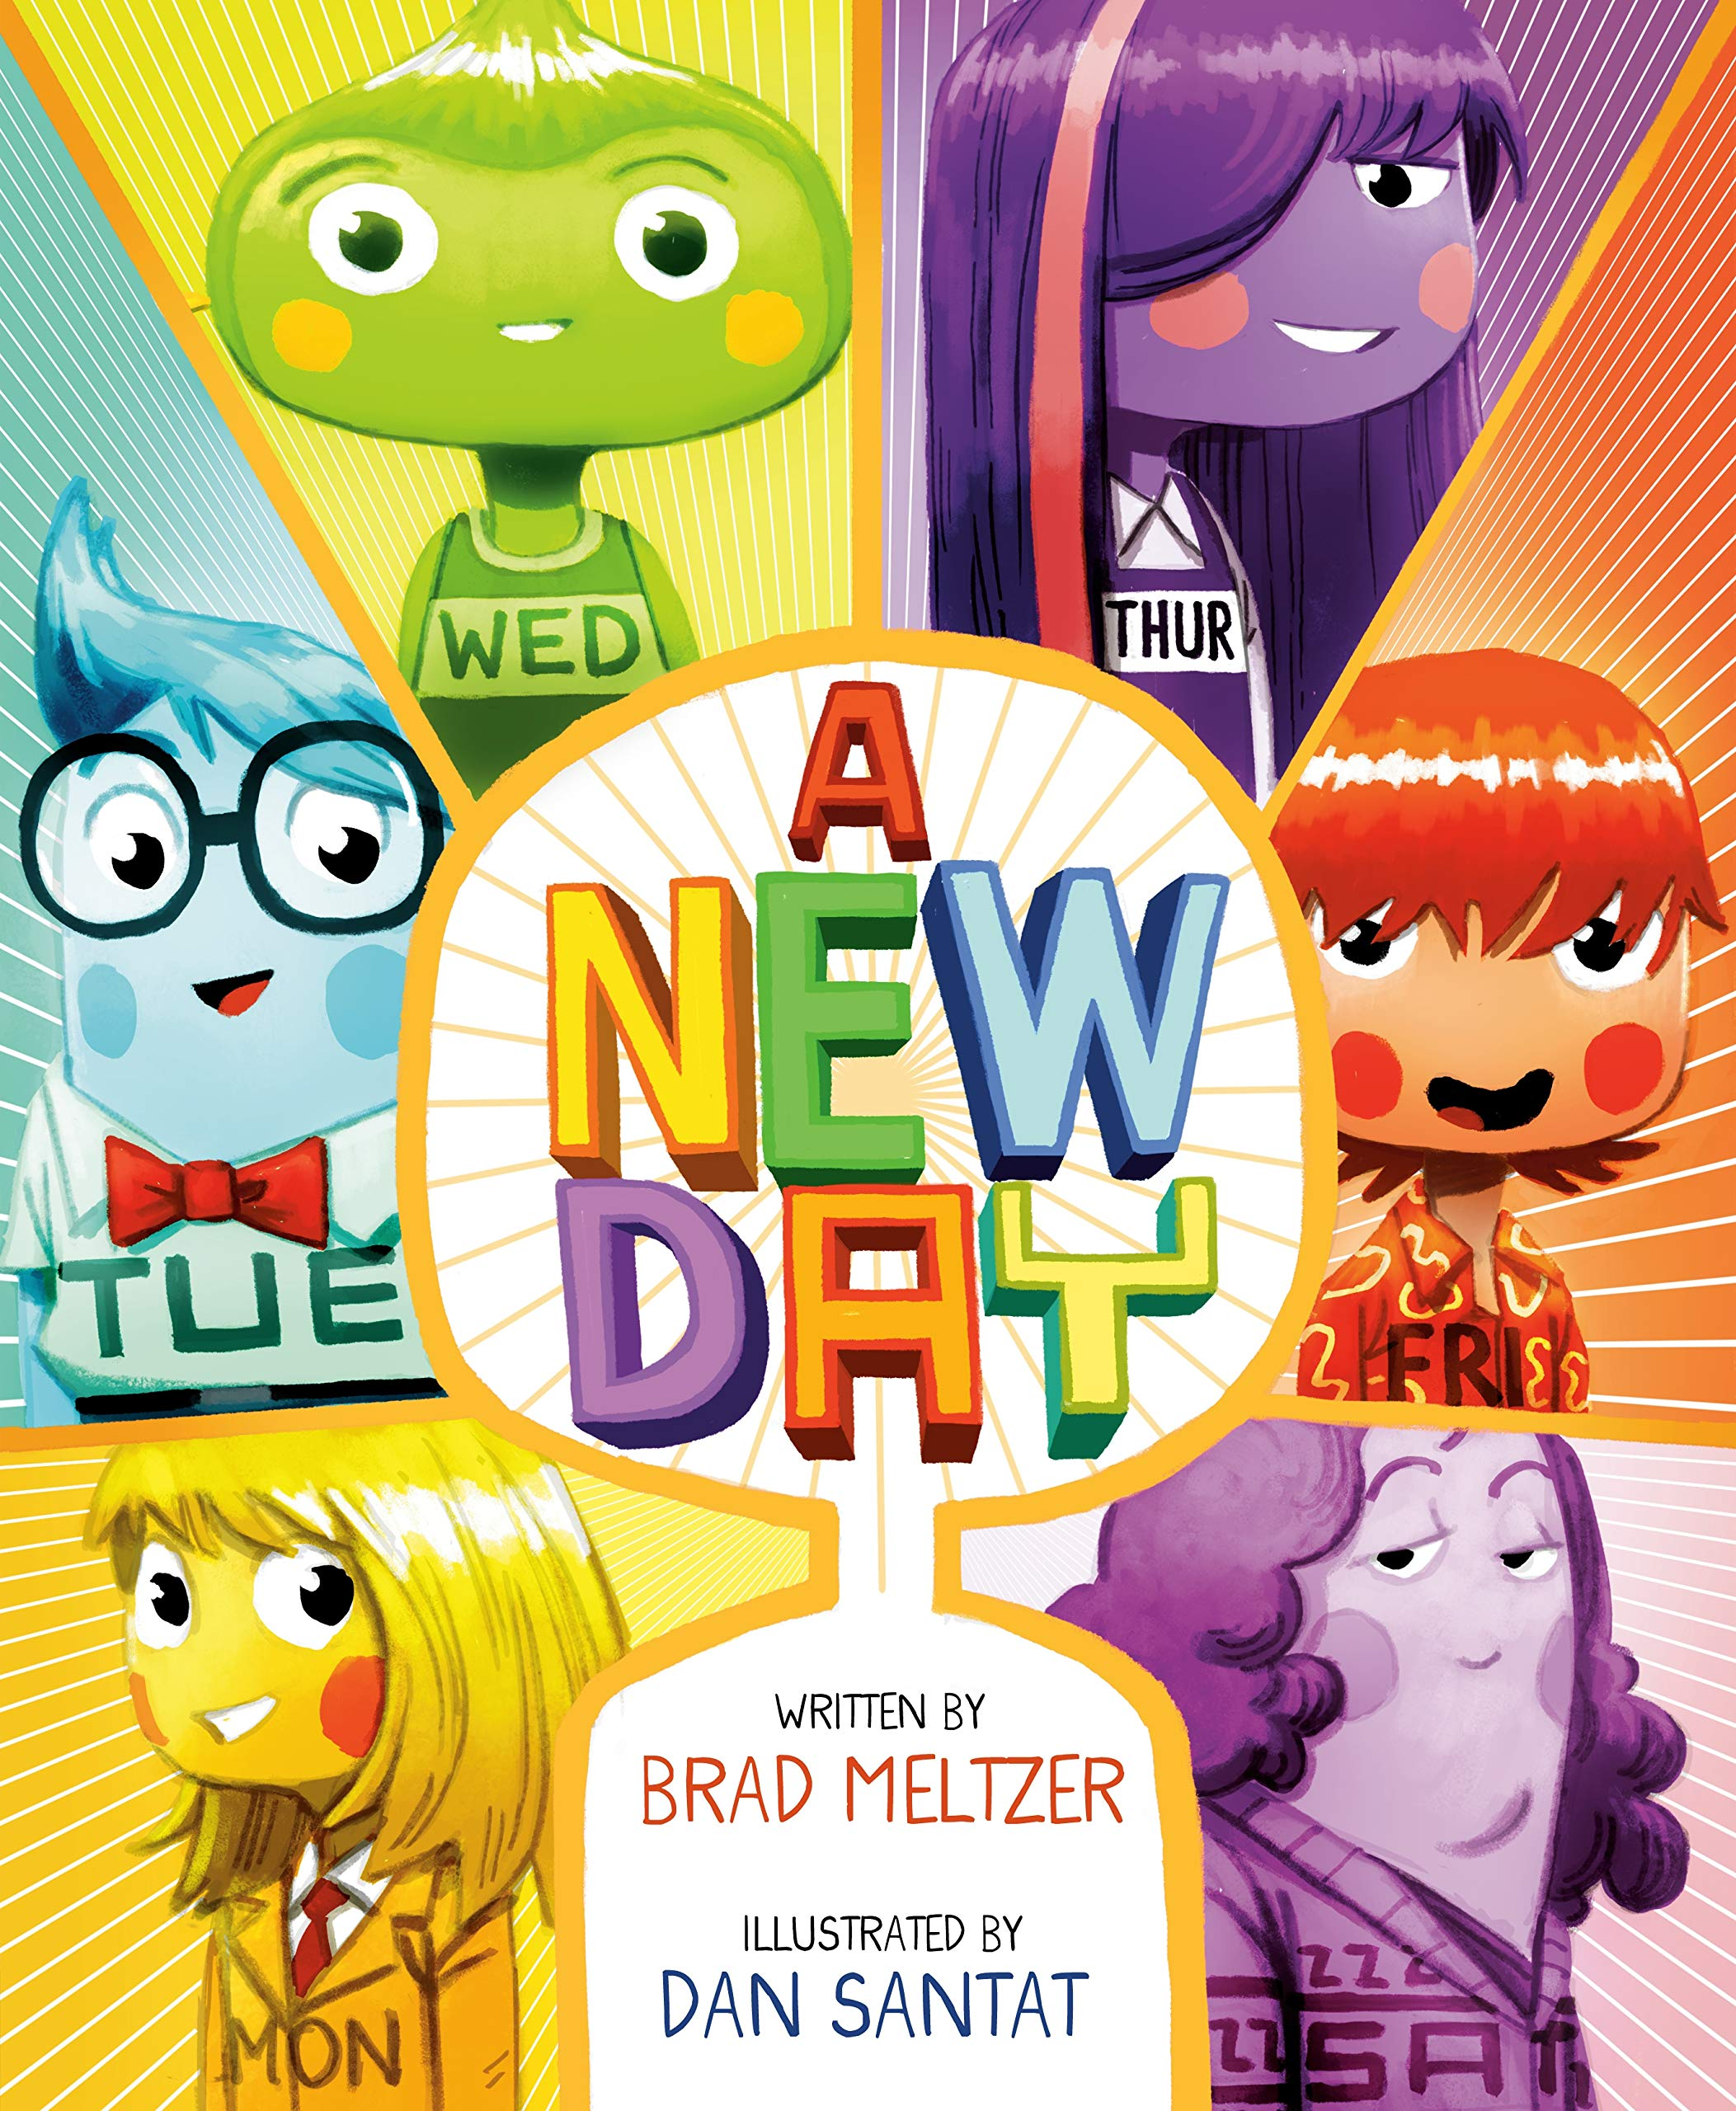 Amazon.com: A New Day (9780525554240): Meltzer, Brad, Santat, Dan: Books